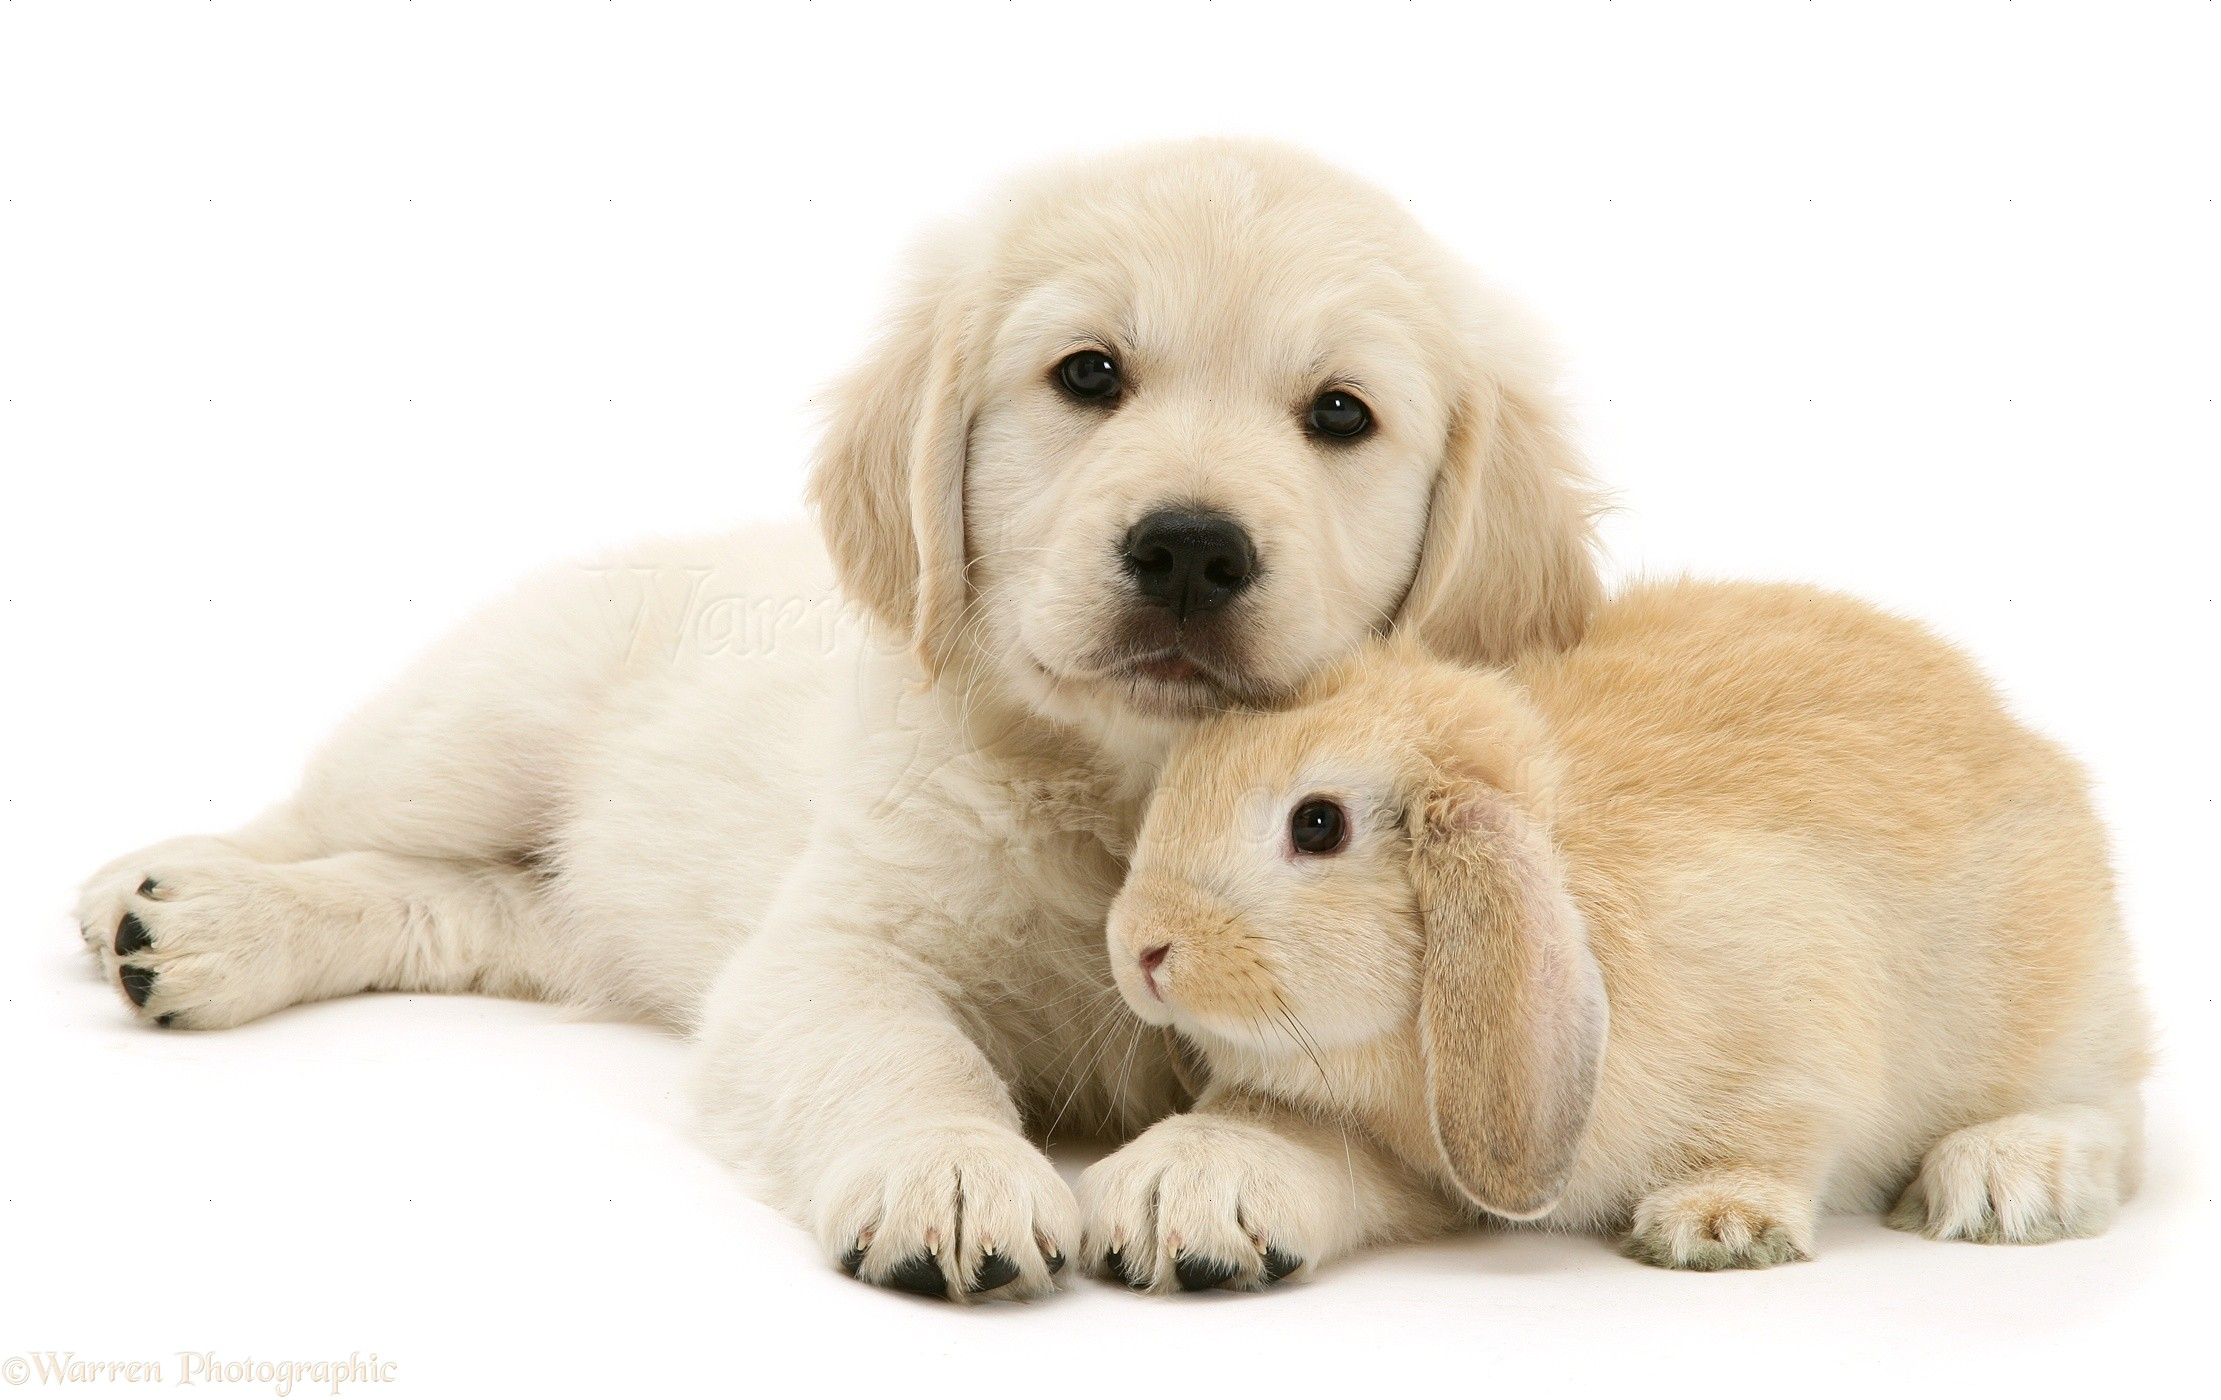 Pets: Golden Retriever pup with young Sandy Lop rabbit ...